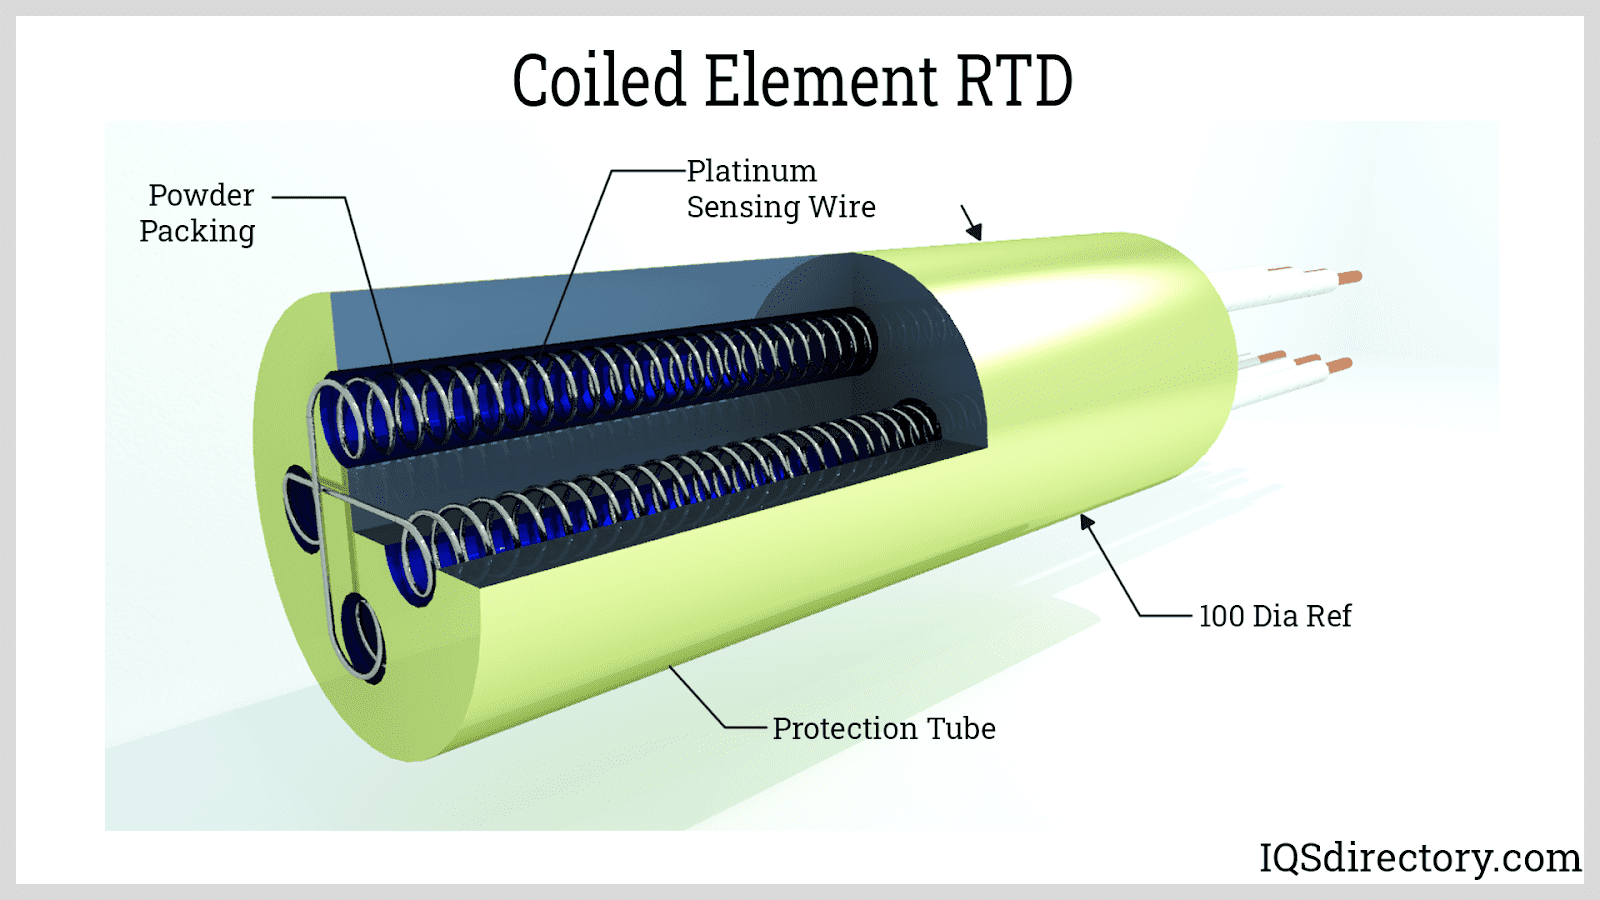 Coiled Element RTD